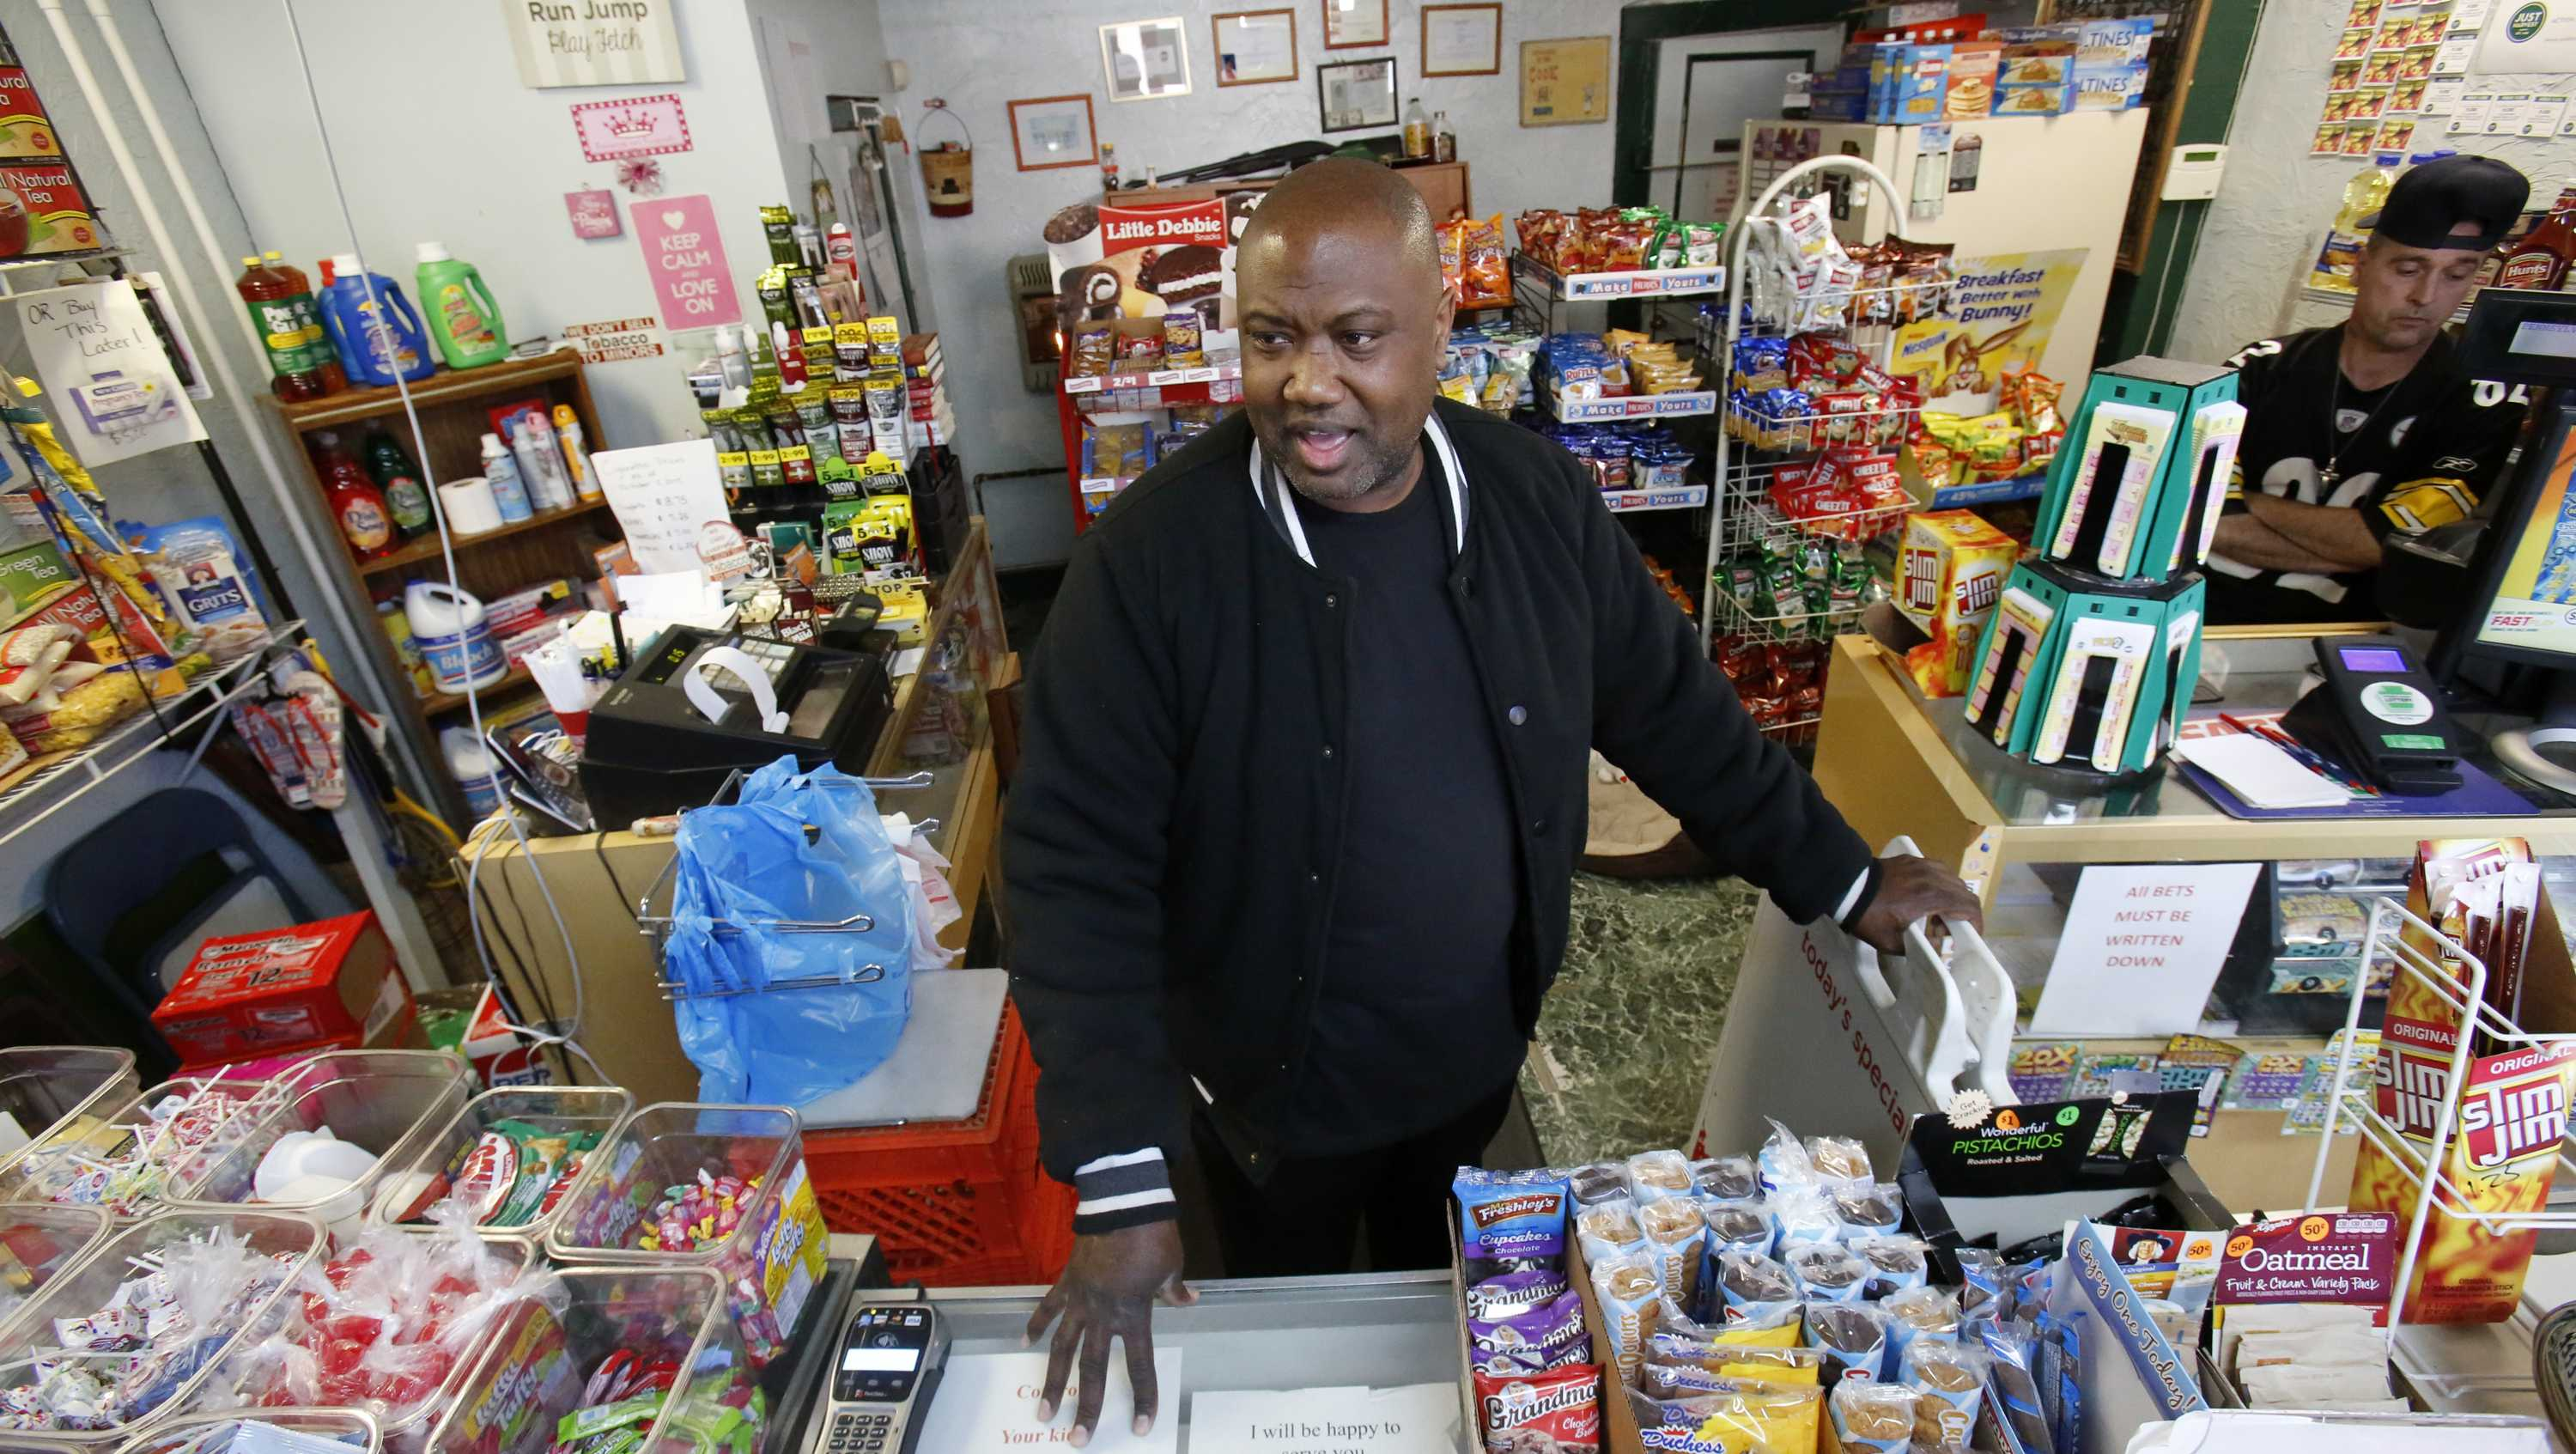 In this Feb. 26, 2018, file photo, Carl Lewis in his market in Rankin, Pa. About half of Lewis' customers pay with benefits from the federal Supplemental Nutrition Assistance Program, so the government's proposal to replace the debit card-type program with a pre-assembled box of shelf-stable goods delivered to recipients worries him and other grocery operators in poor areas.